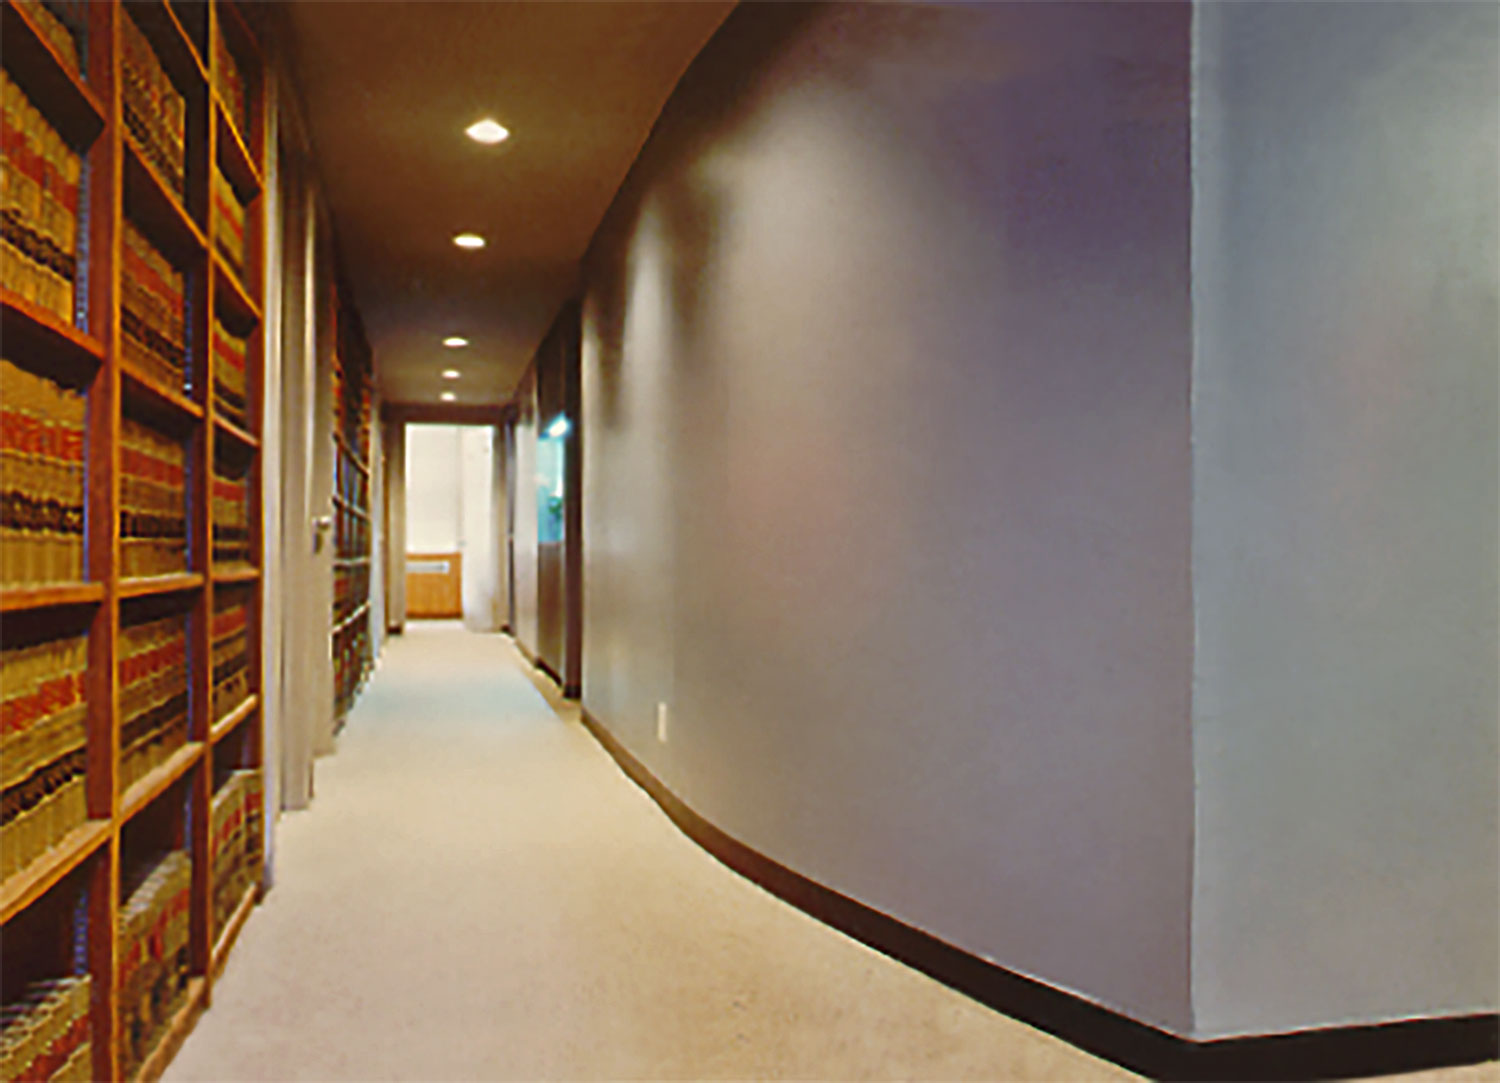 OCV Architects designed the offices of attorneys Raphael & Marcus in the Fred F. French building